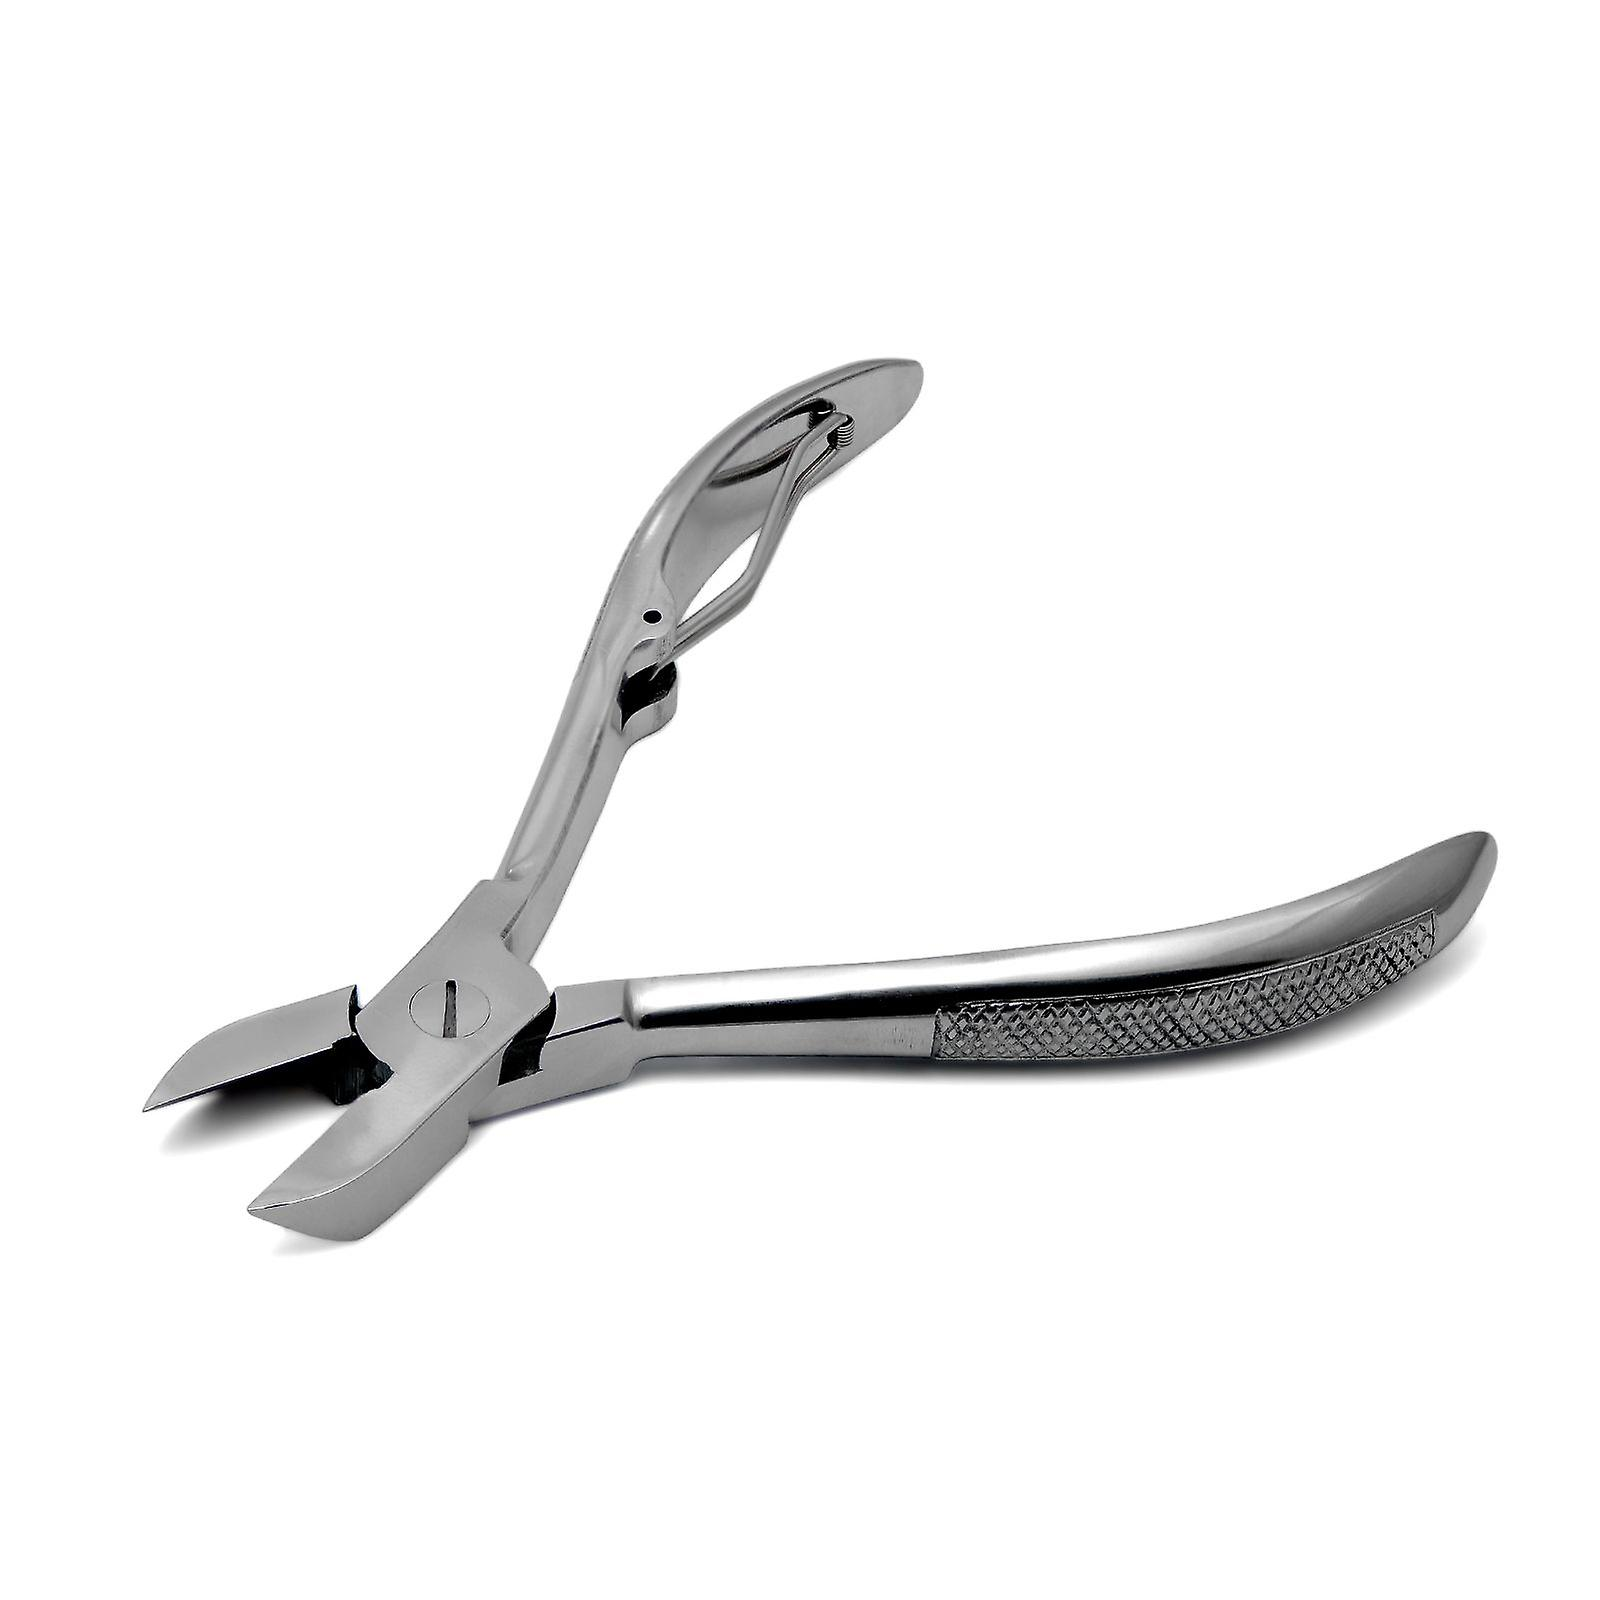 Nail Pliers, Stainless Steel, Made in Solingen (Germany) 1668